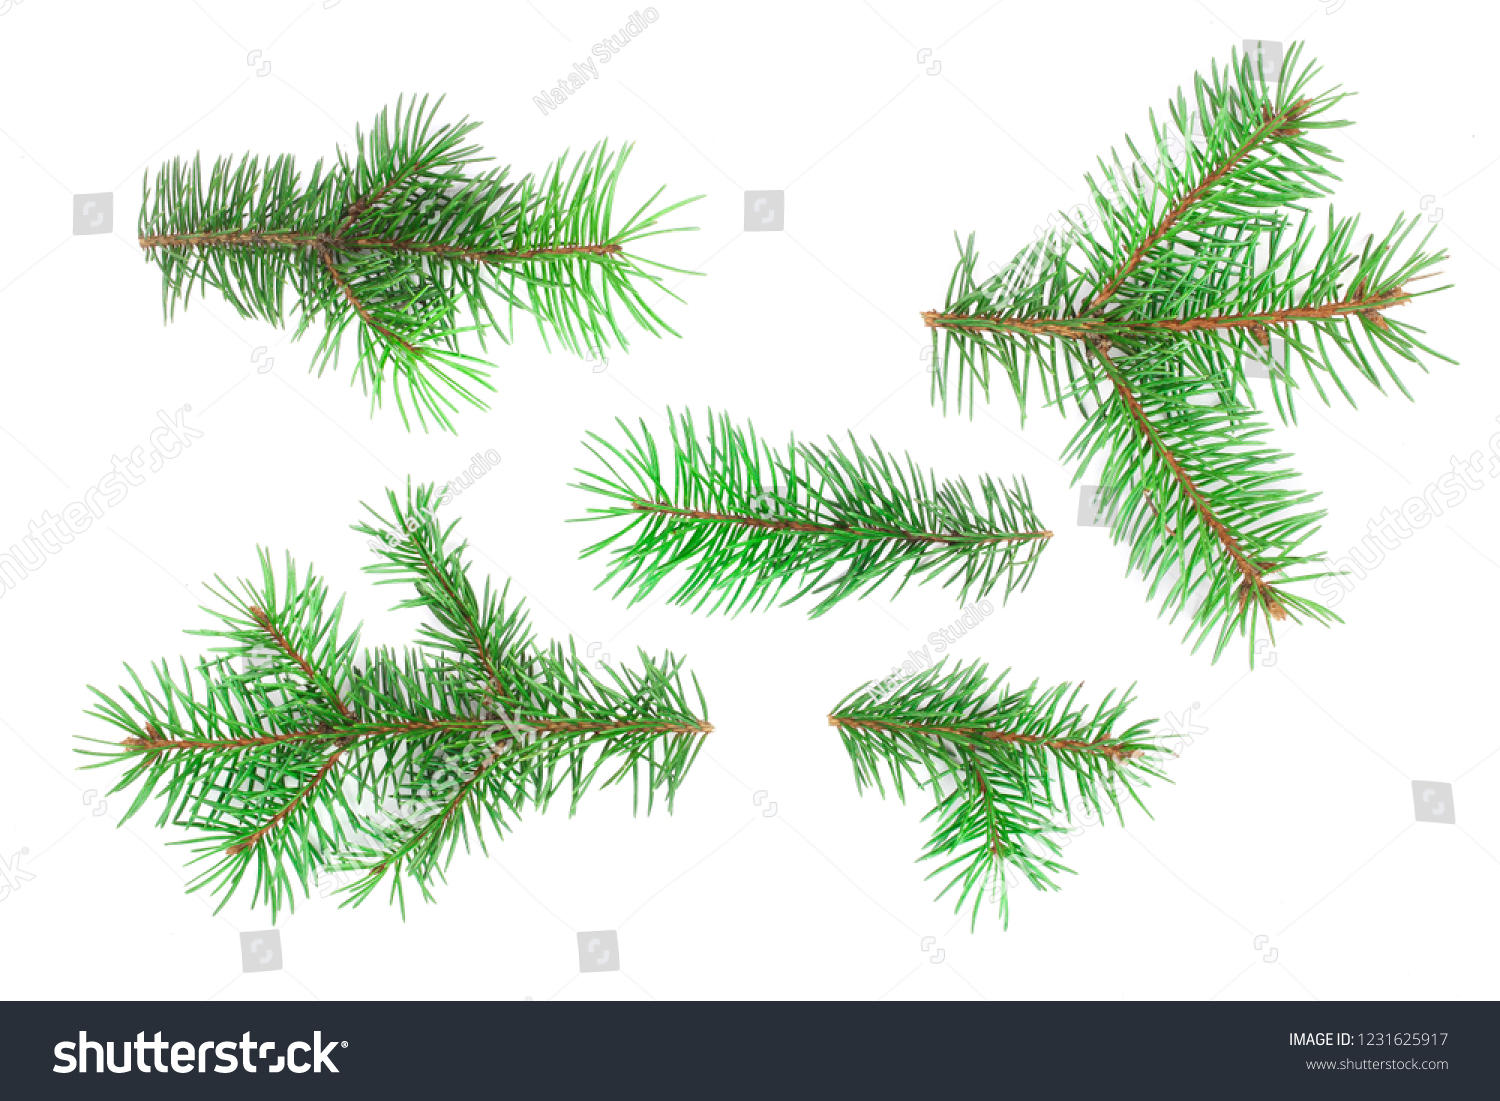 Fir tree branch isolated on white background. Christmas background. Top view #1231625917